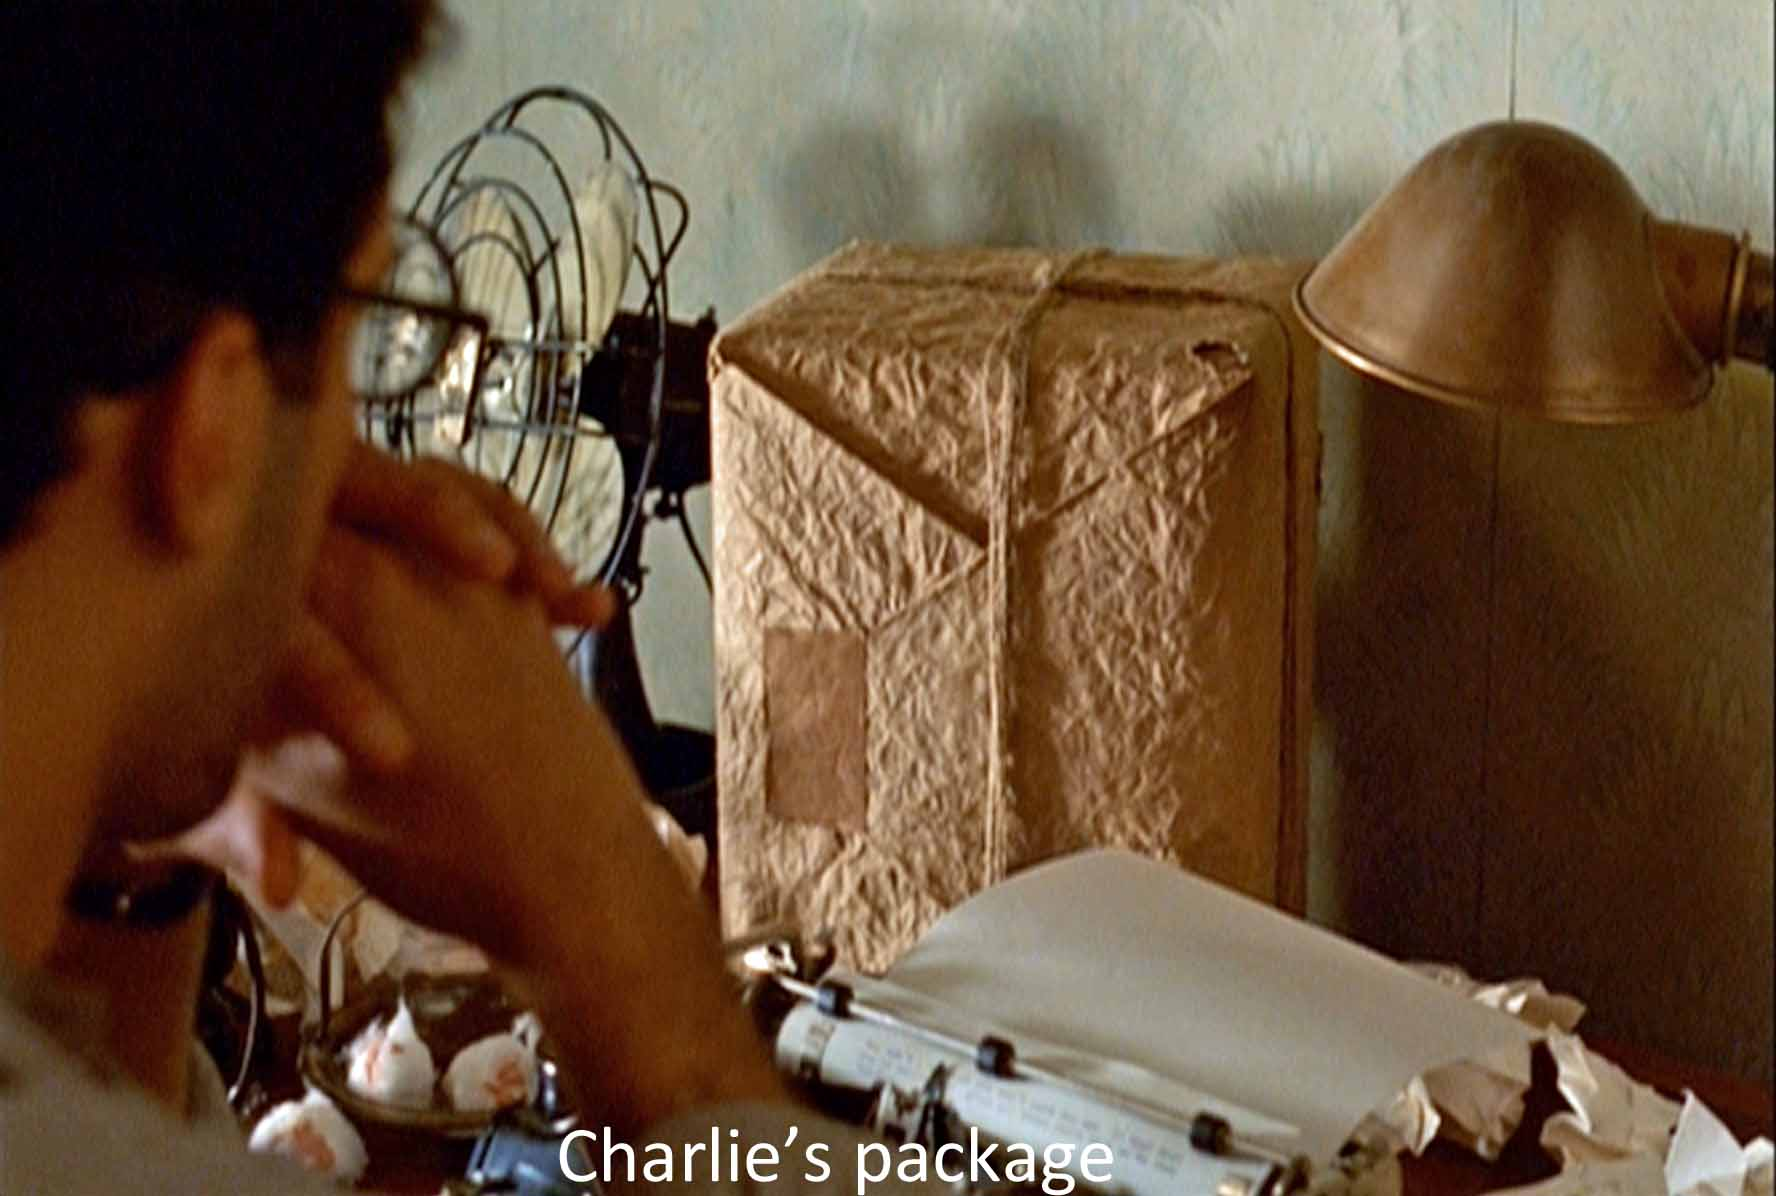 Charlie's package